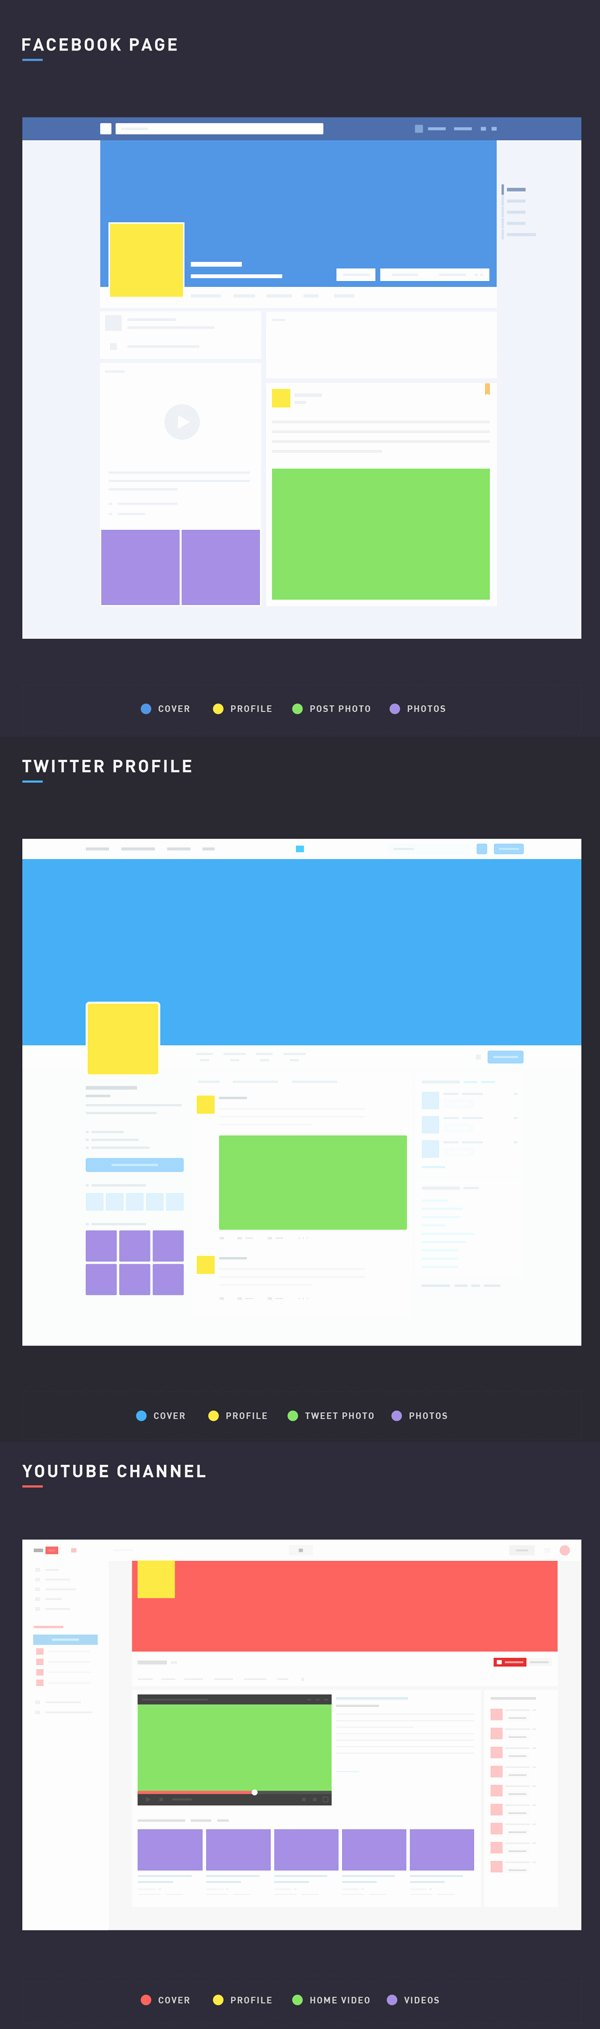 Social Media Template Psd Fresh Free Psd Mockup Templates Creative Specks